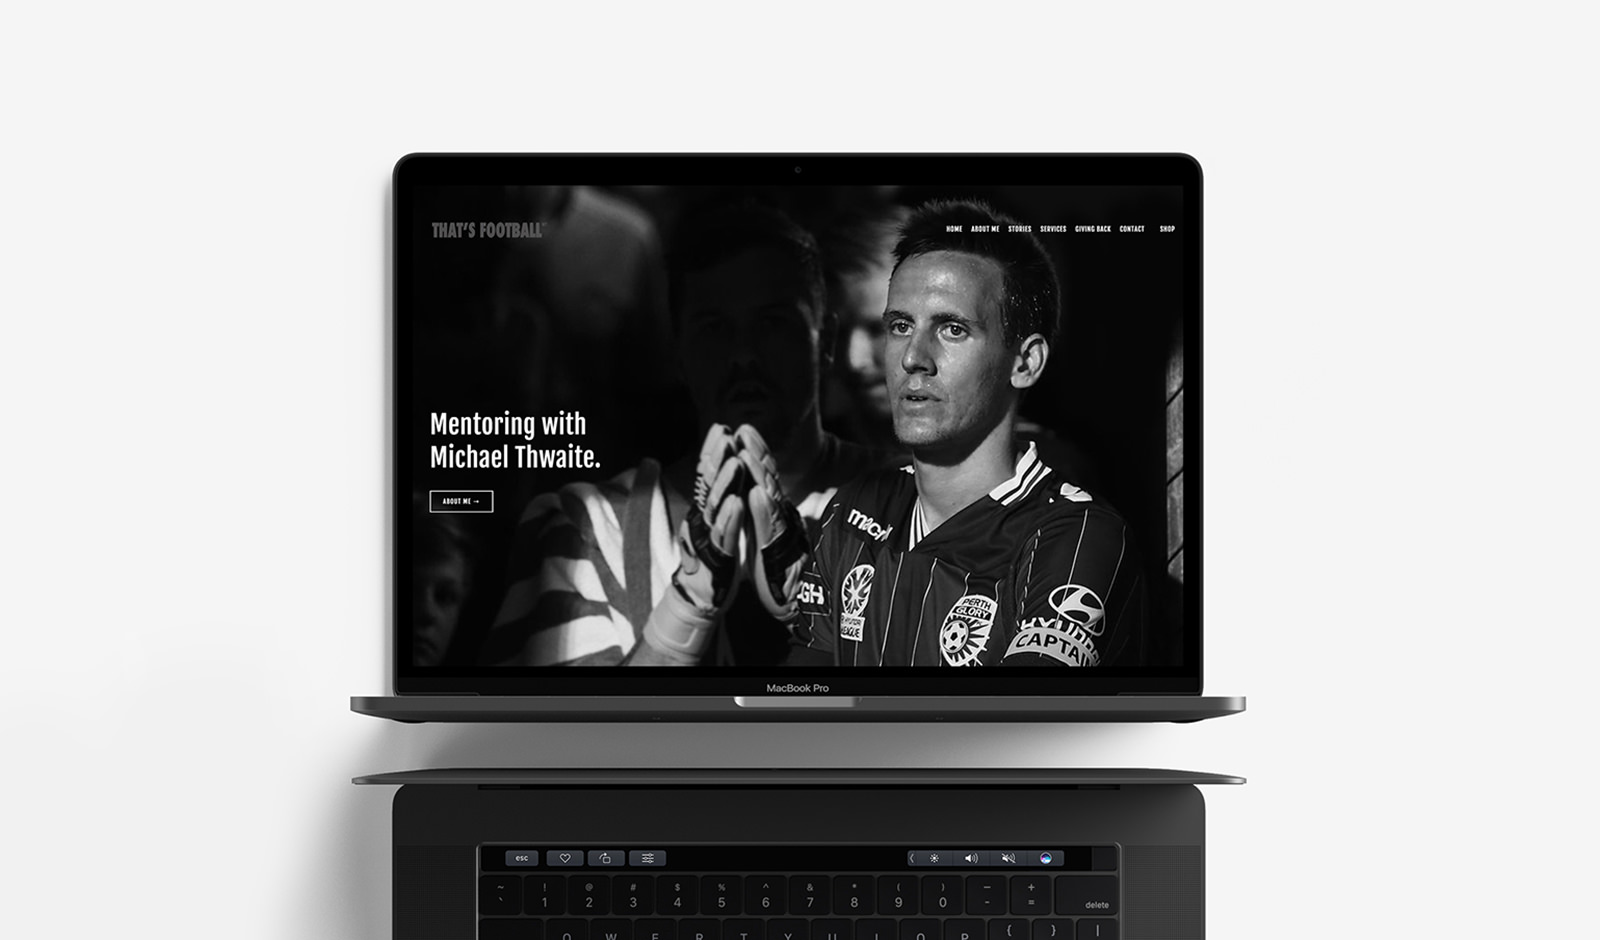 An image of a homepage website design for That's Football